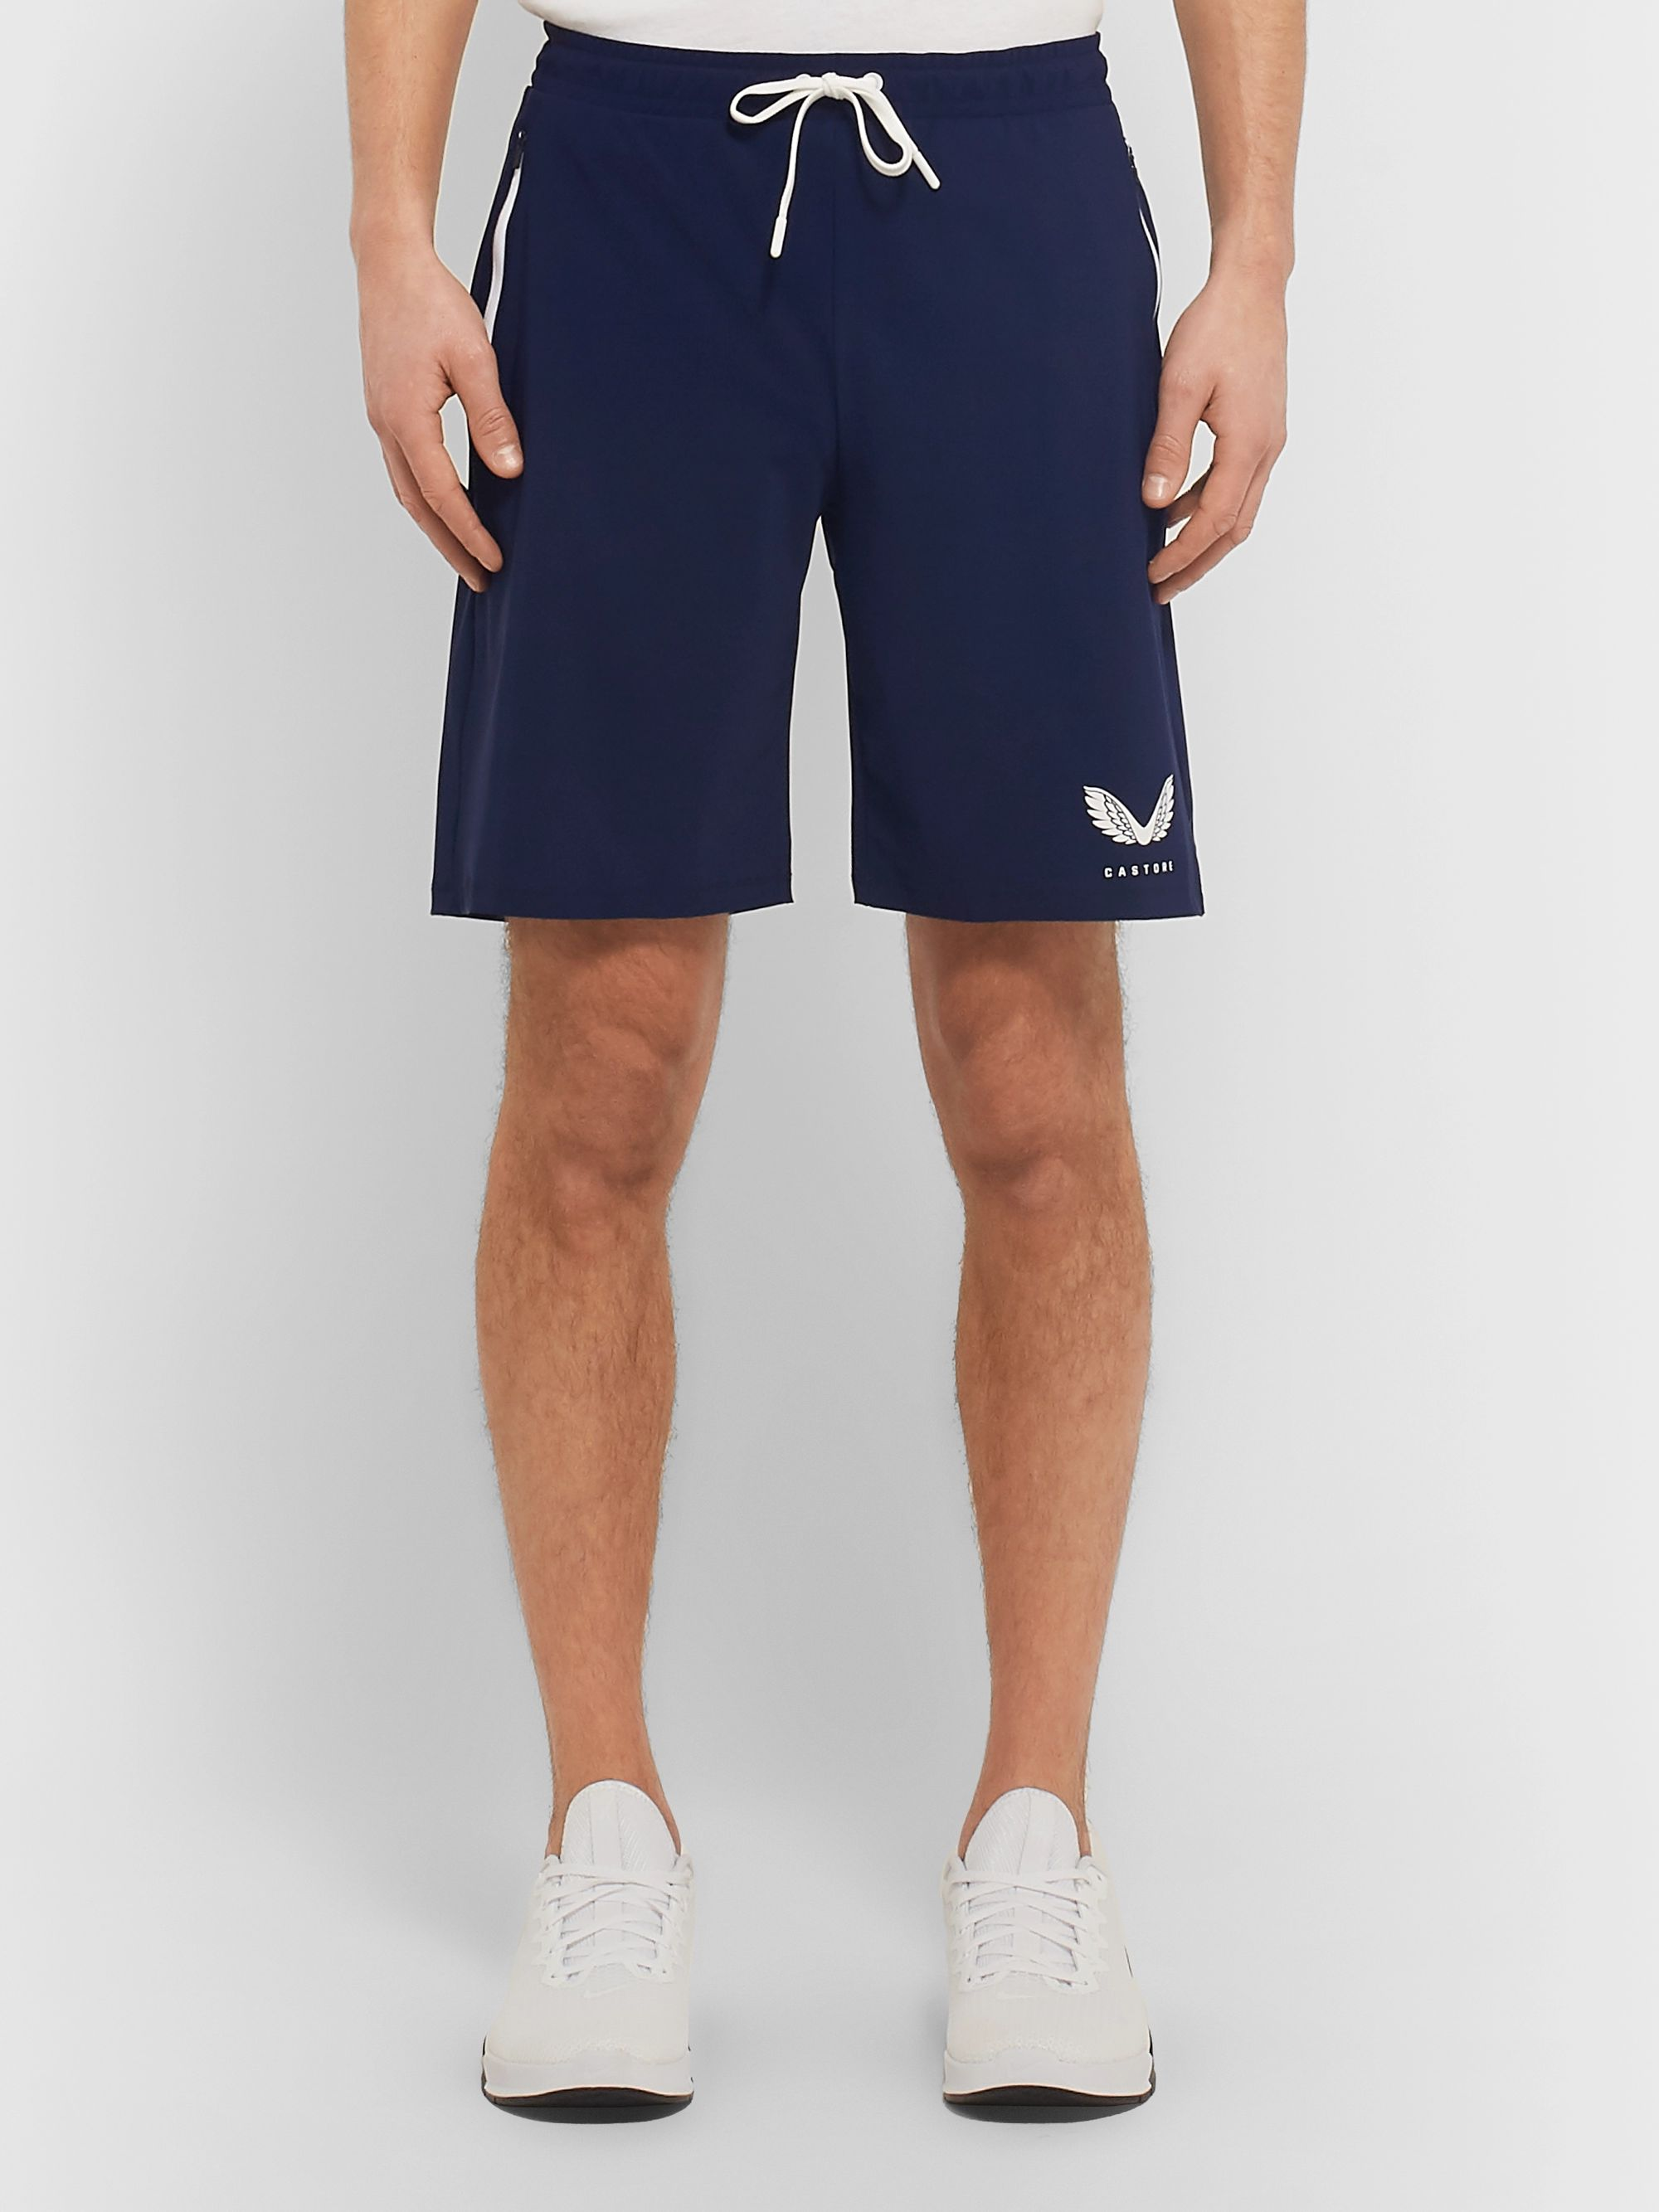 CASTORE Alves Slim-Fit Stretch-Jersey Shorts